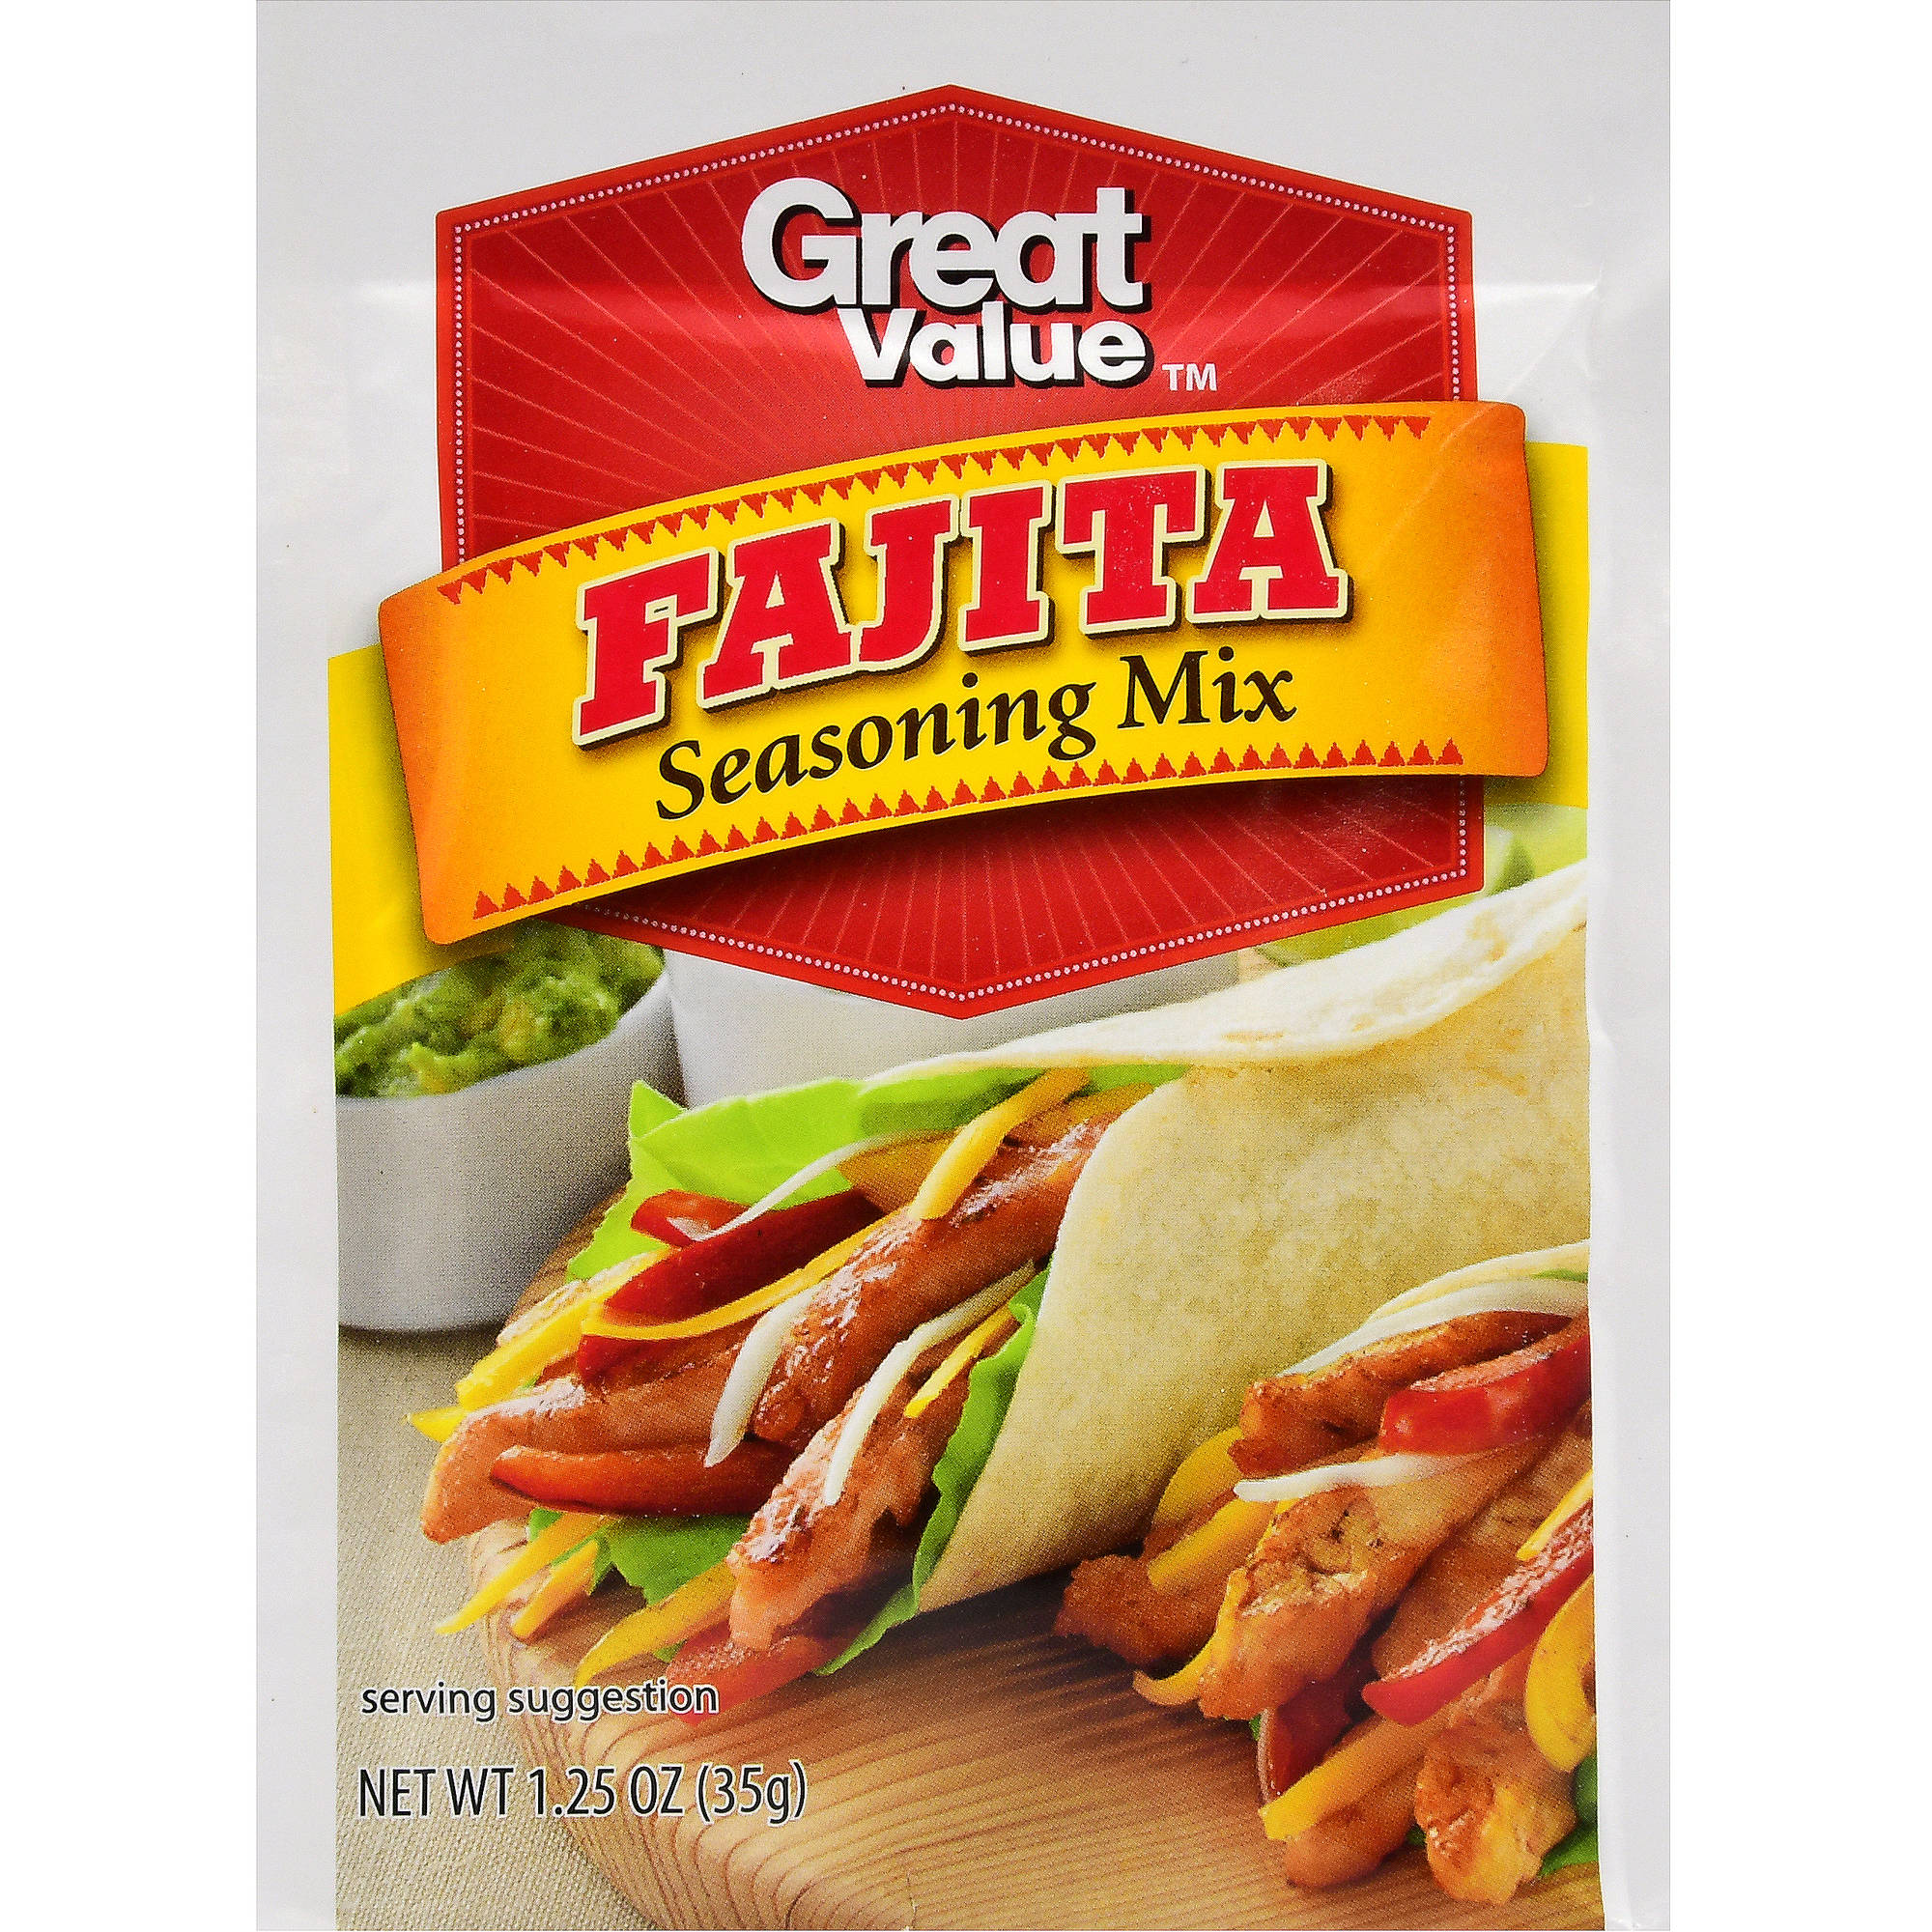 (4 Pack) Great Value Fajita Seasoning Mix, 1.25 oz